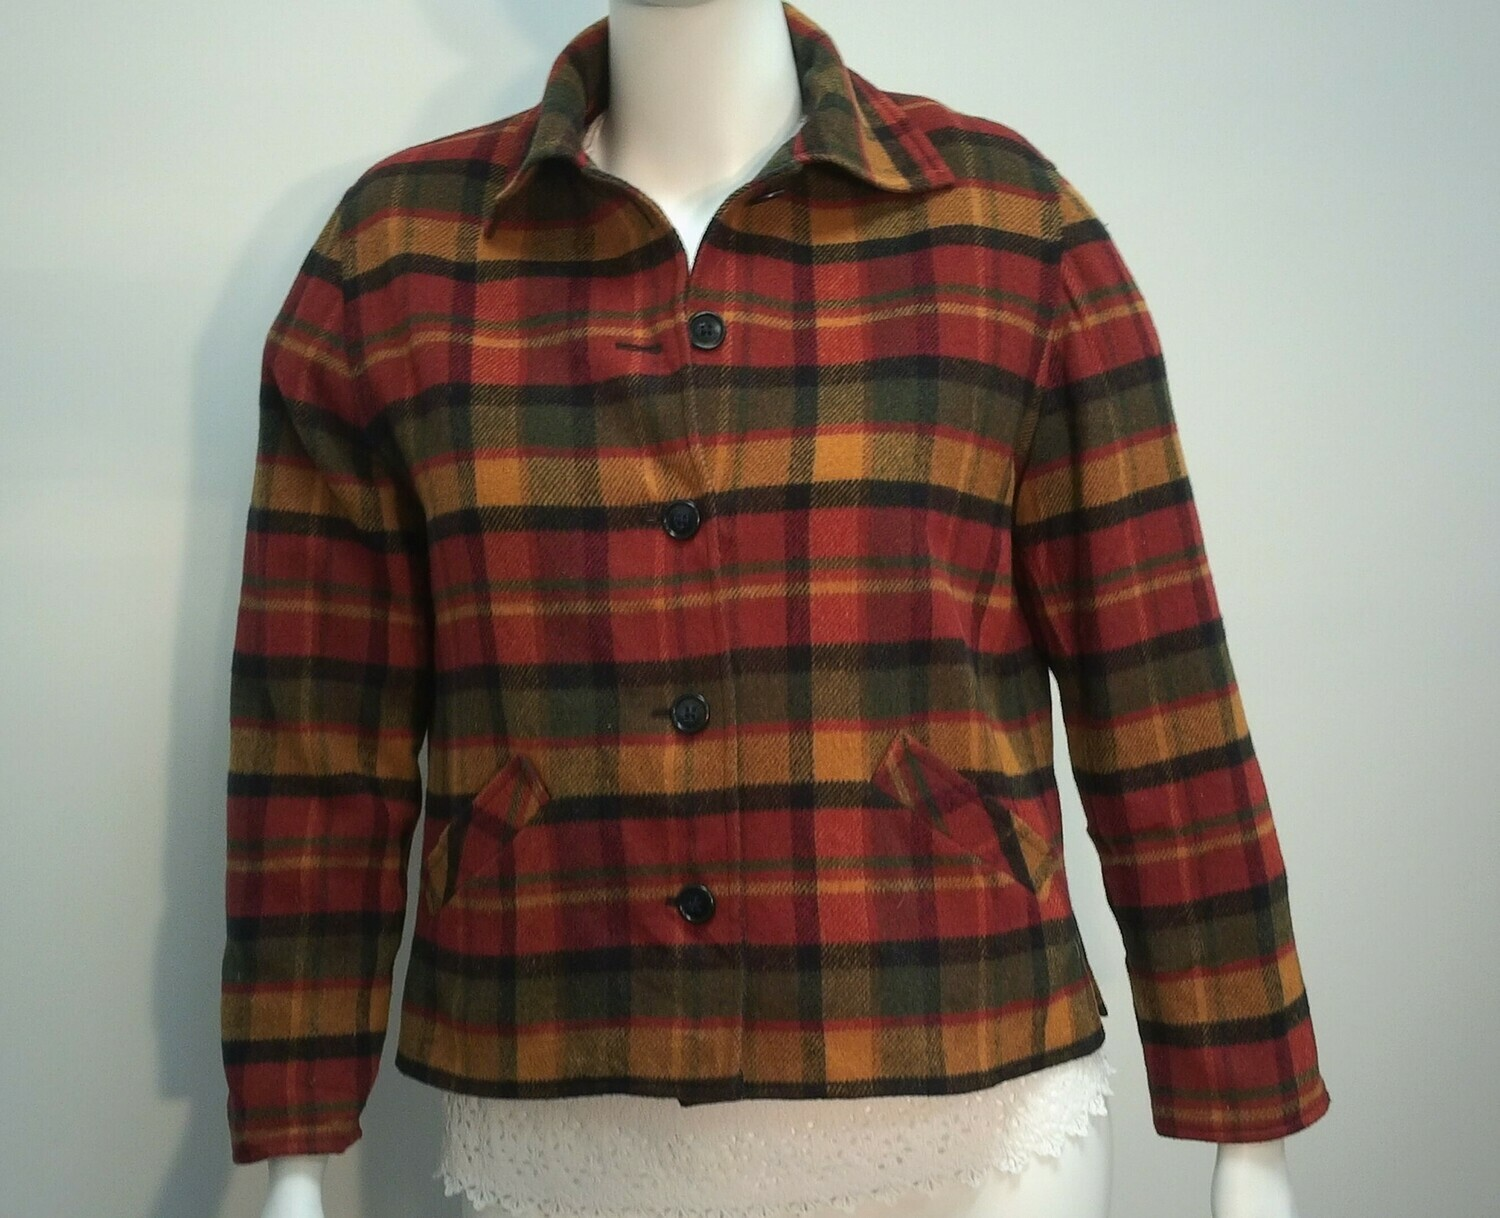 Plaid Jacket from Donny Brook